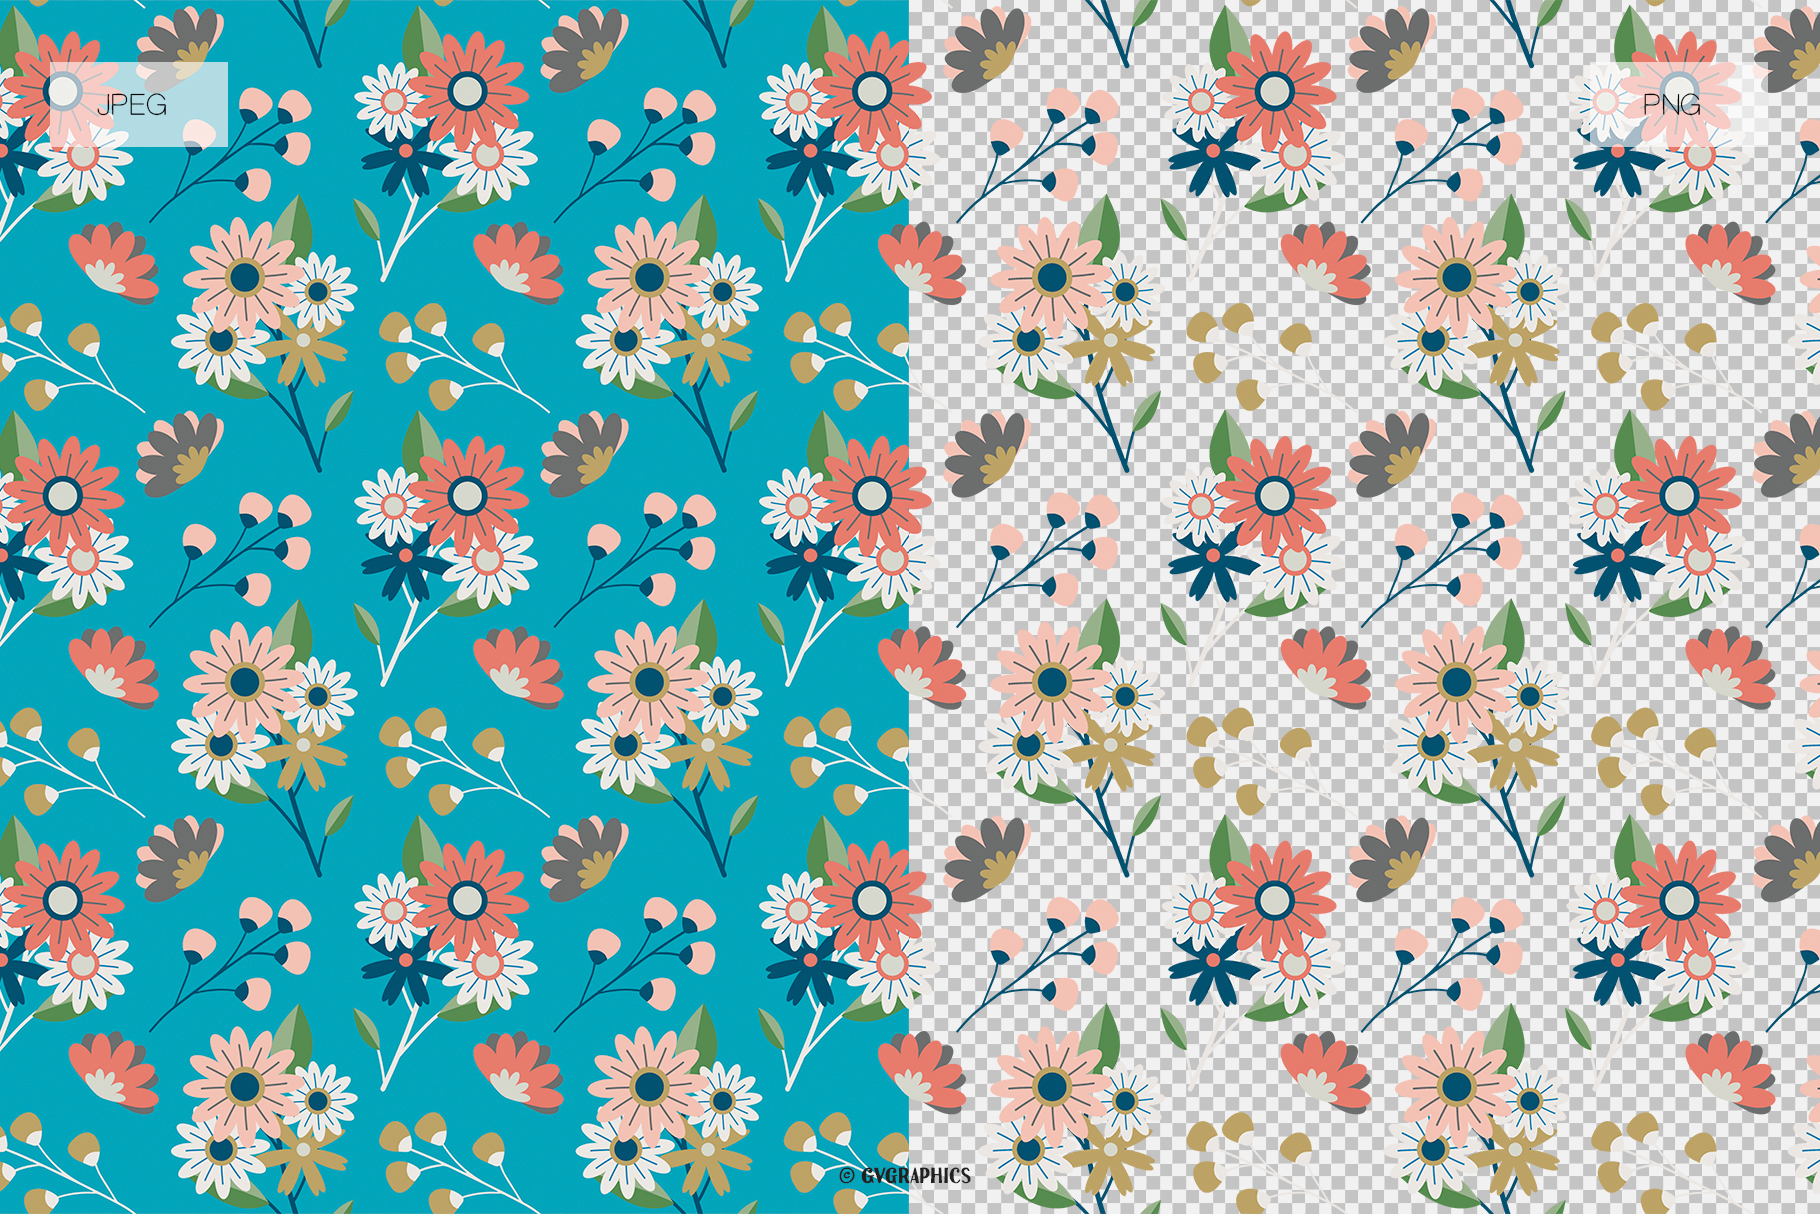 Flowers Berries and Teapots Seamless Patterns JPG and PNG Examples.